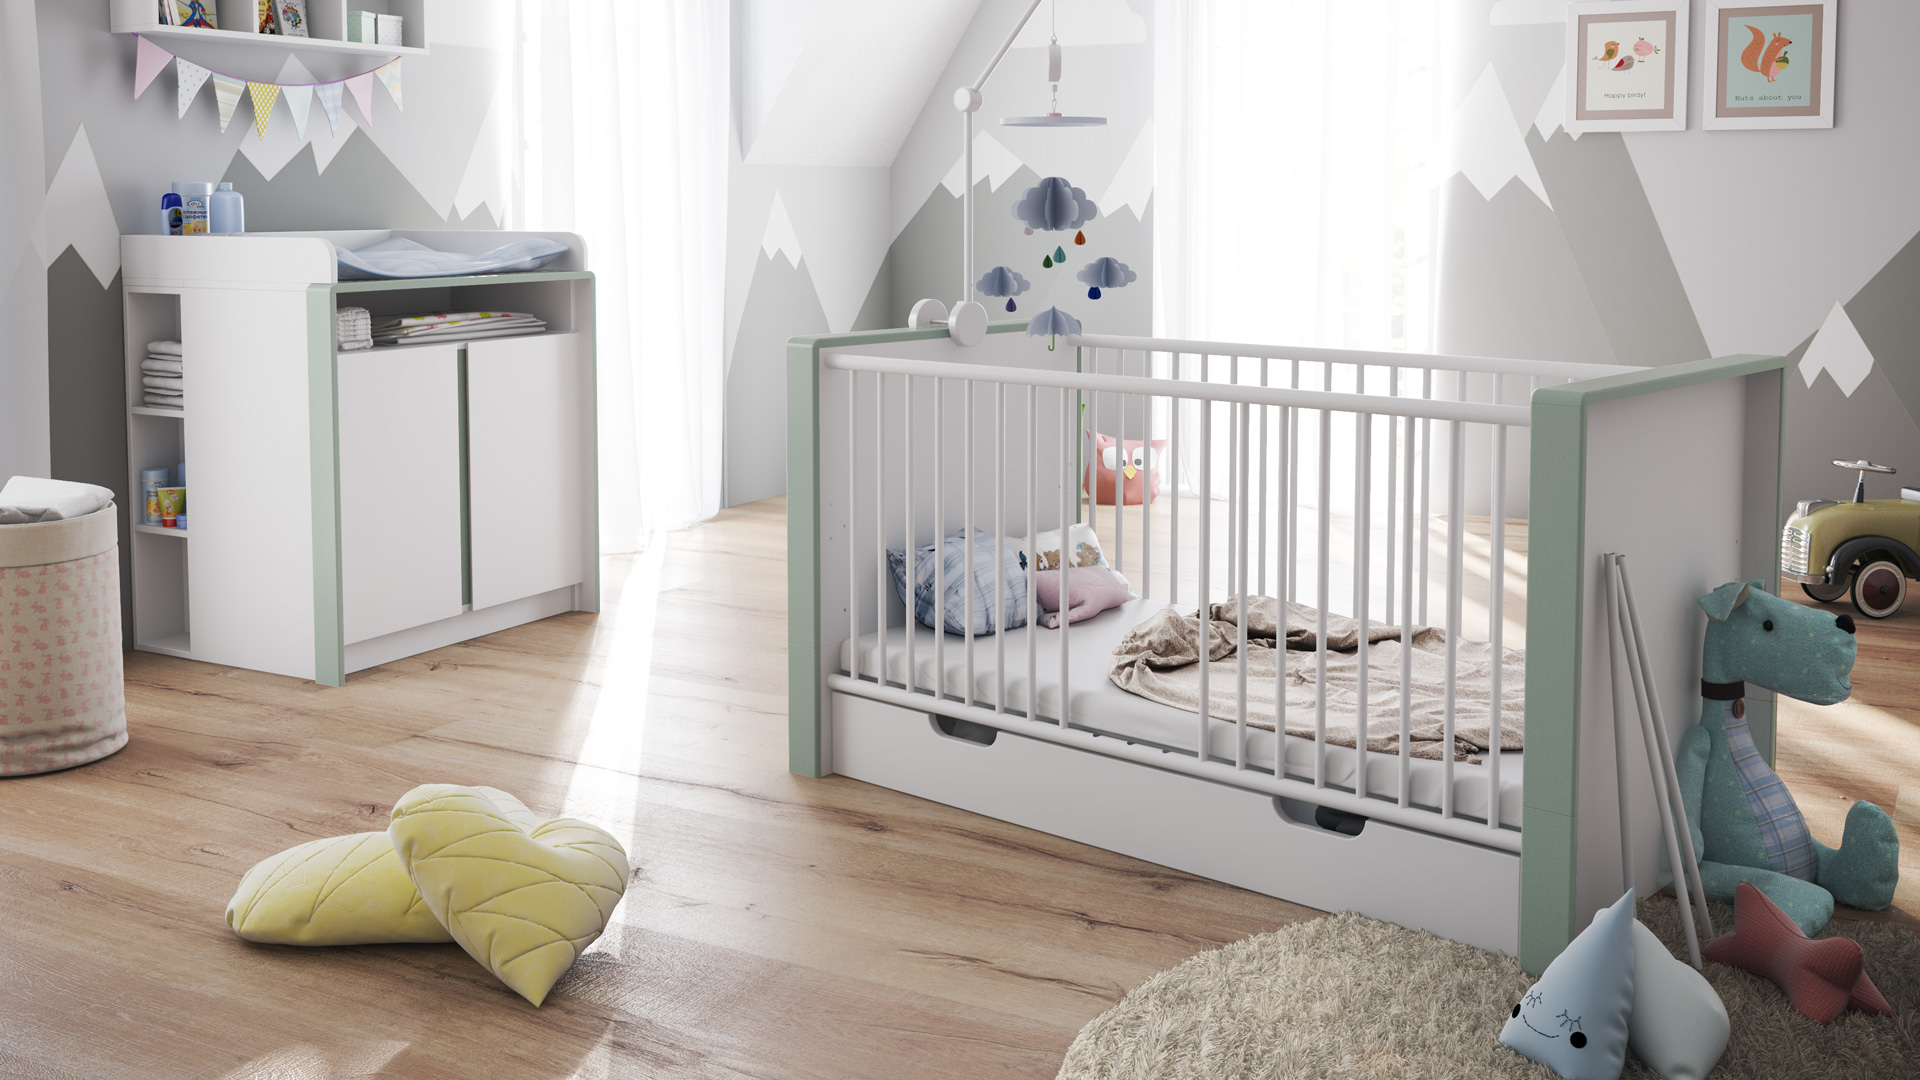 babyzimmer kinderzimmer bett wickelkommode babym bel umbaubar nandini set 2 wei ebay. Black Bedroom Furniture Sets. Home Design Ideas